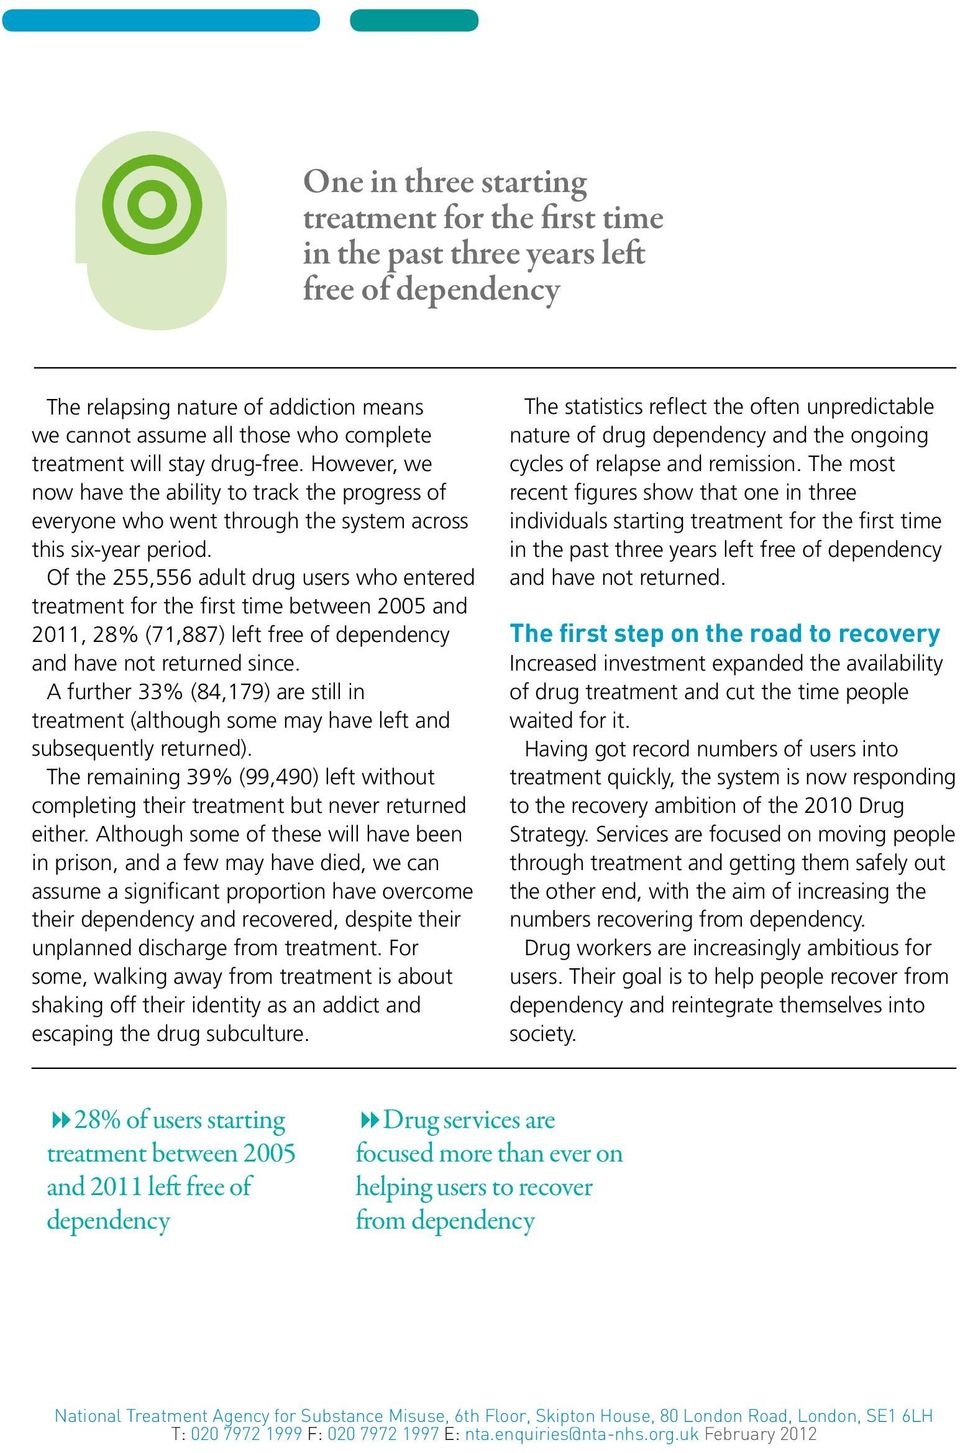 Of the 255,556 adult drug users who entered treatment for the first time between 2005 and 2011, 28% (71,887) left free of dependency and have not returned since.